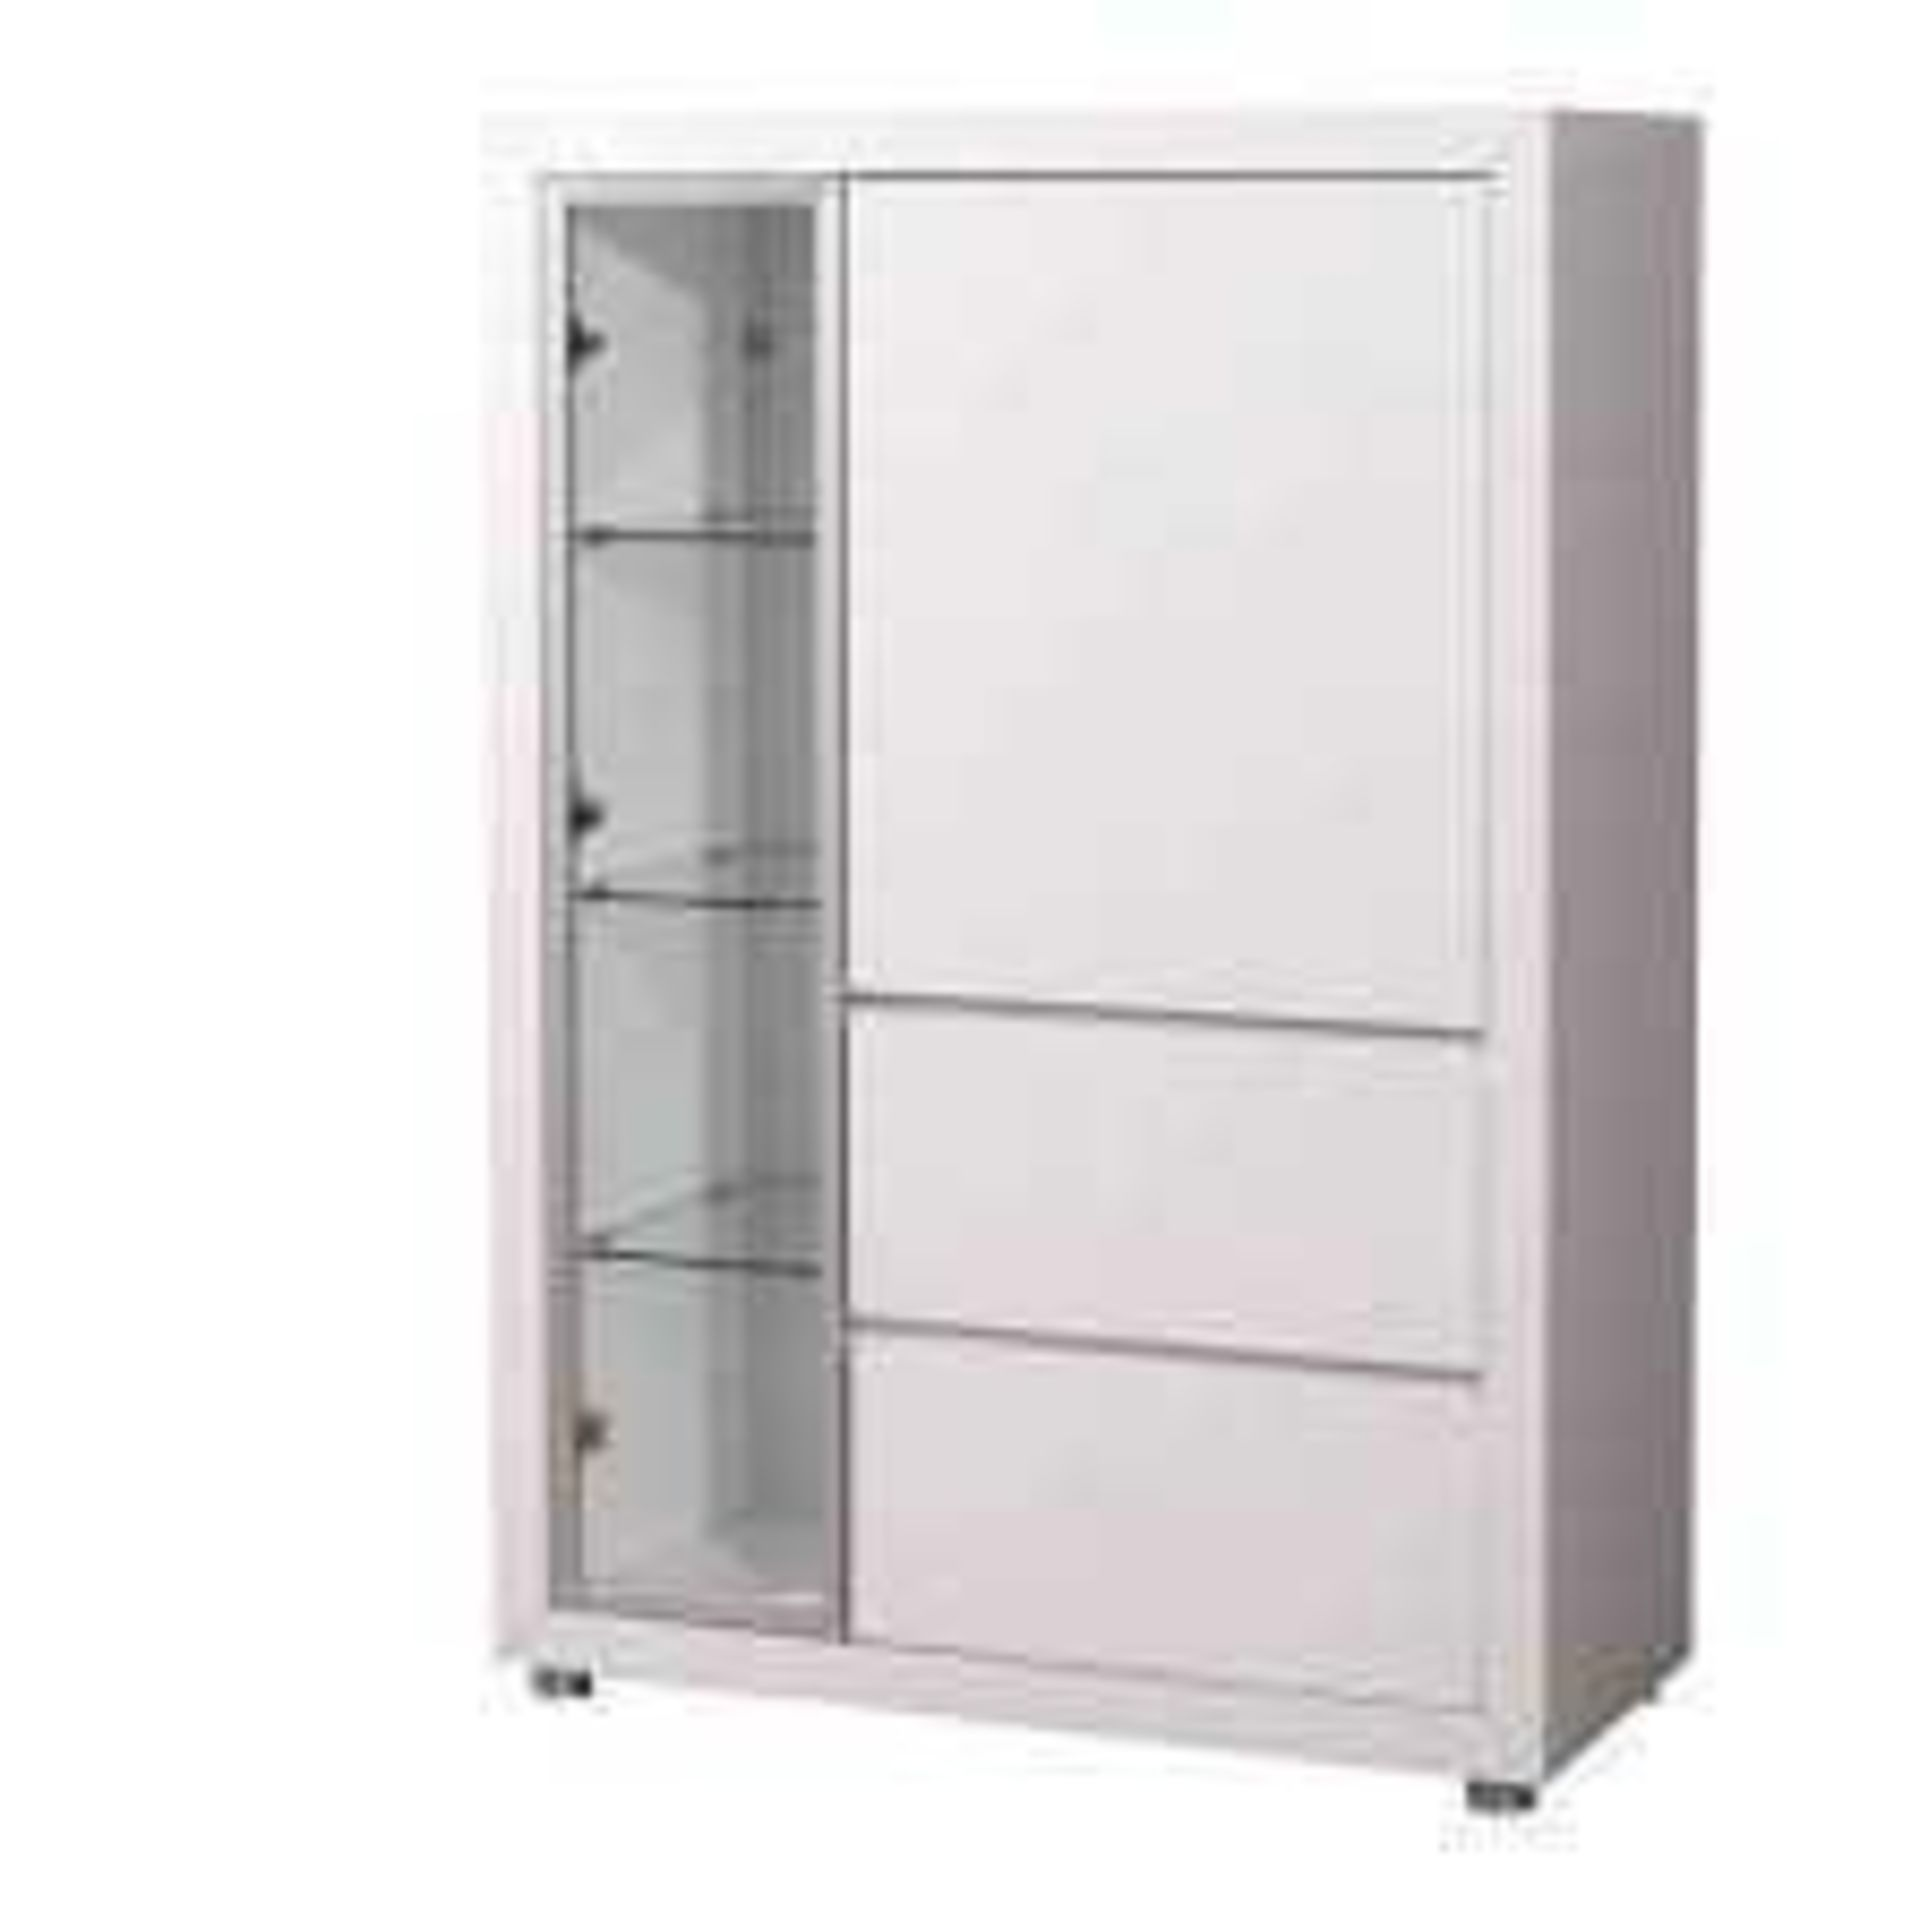 RRP £200 - New Boxed 'Fino' 2 Door Display Cabinet In White High Gloss